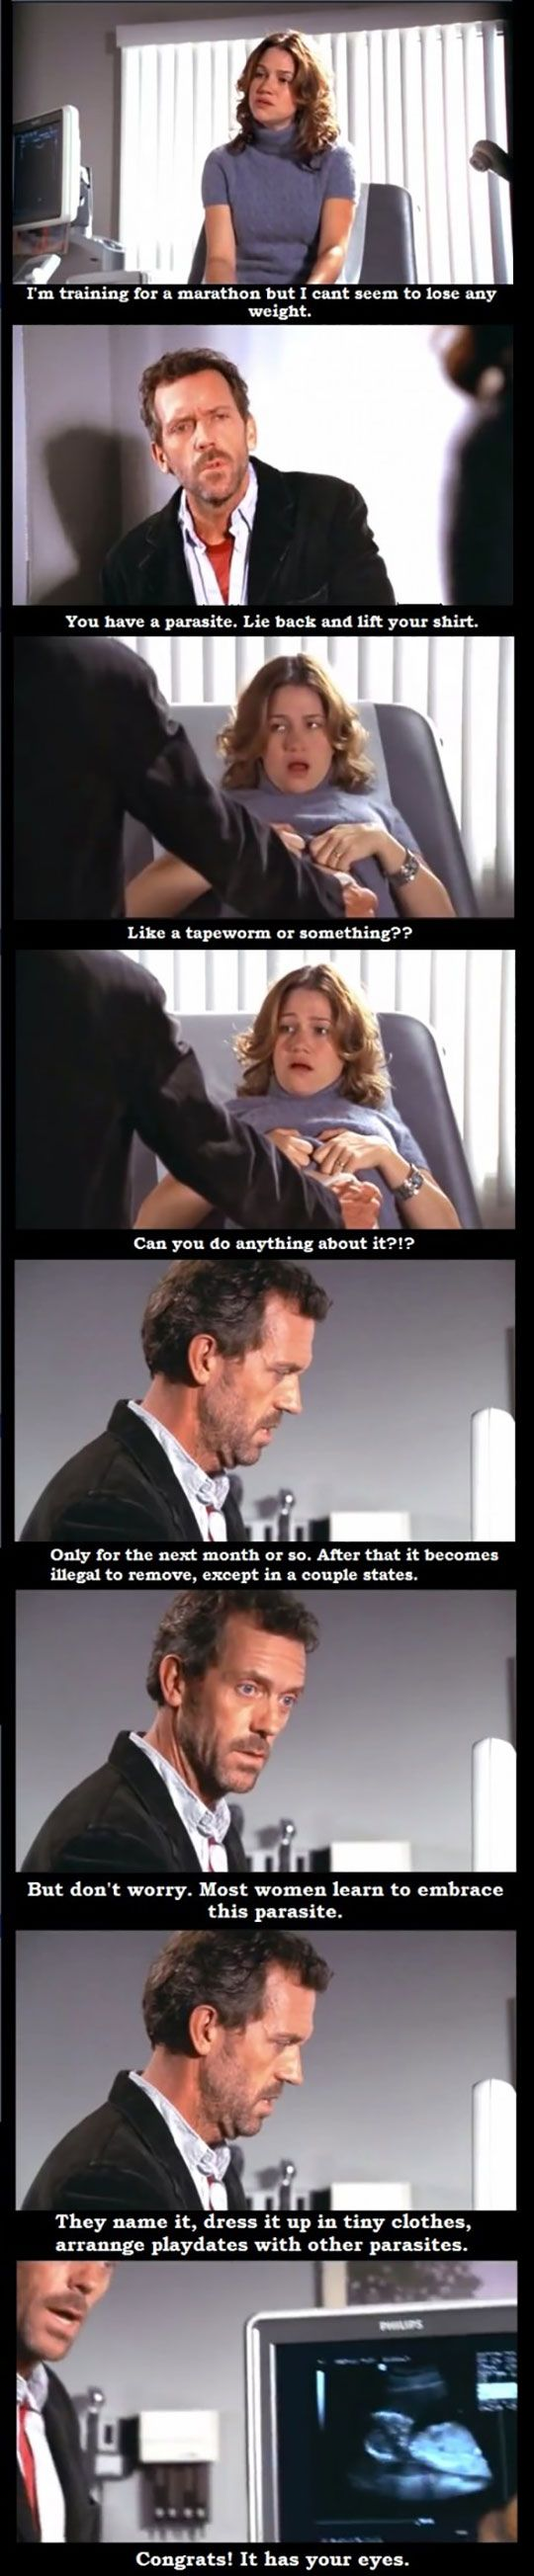 One of my favorite House scenes